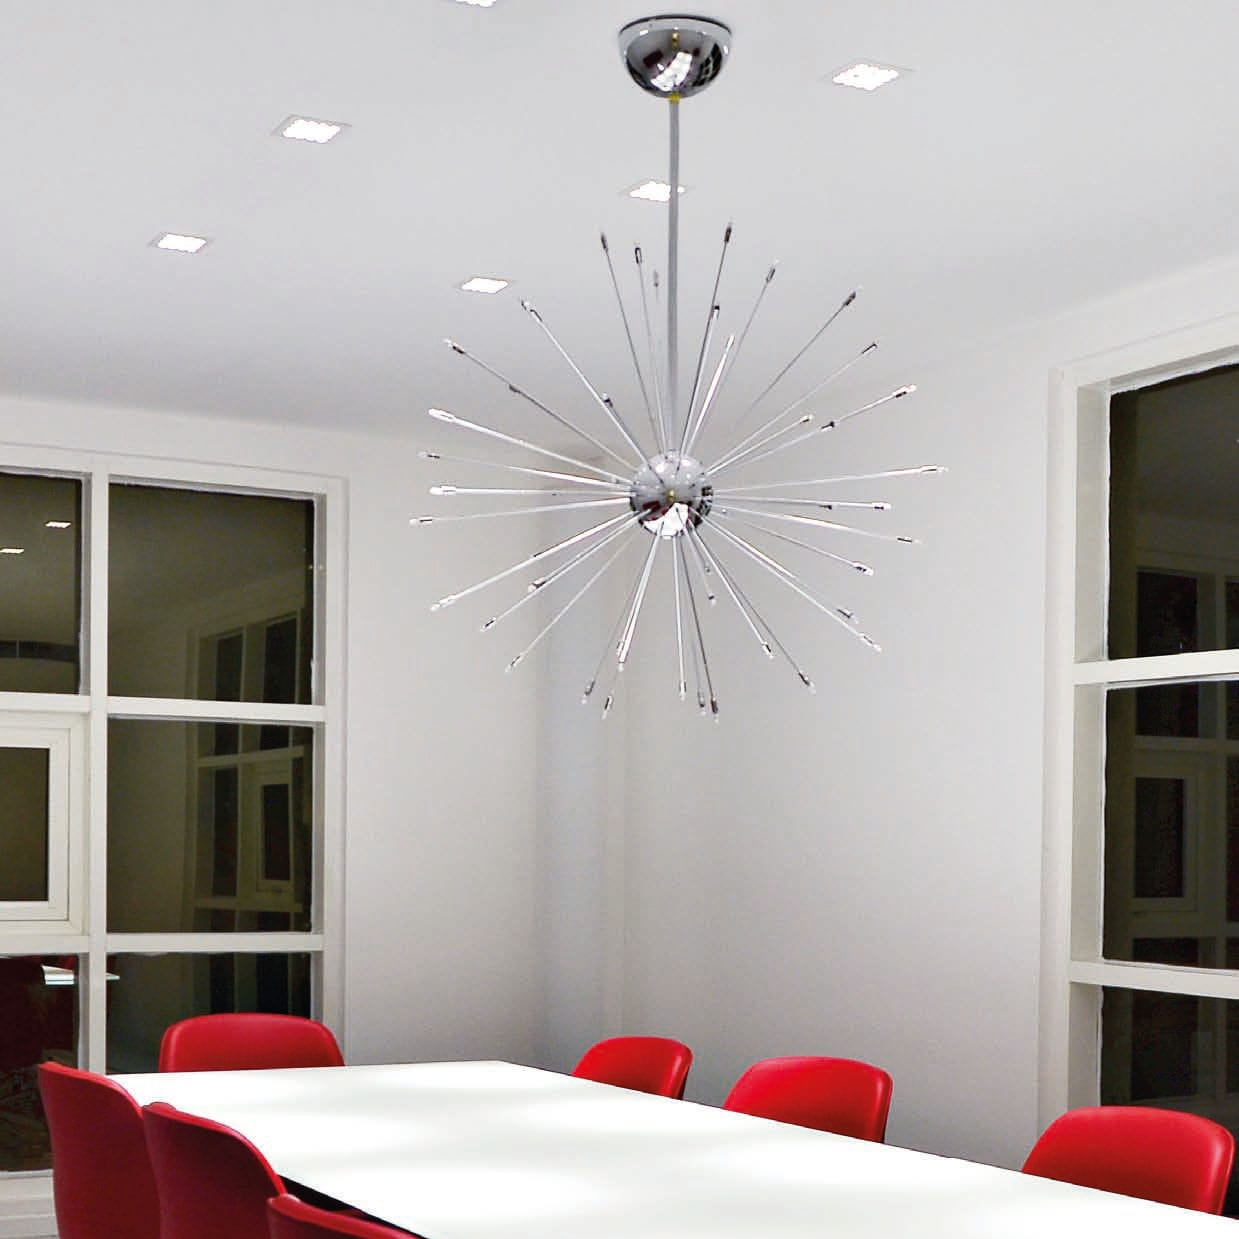 Recessed downlight / LED / square / stainless steel - ANDROMEDA Q by Carla  Baratelli